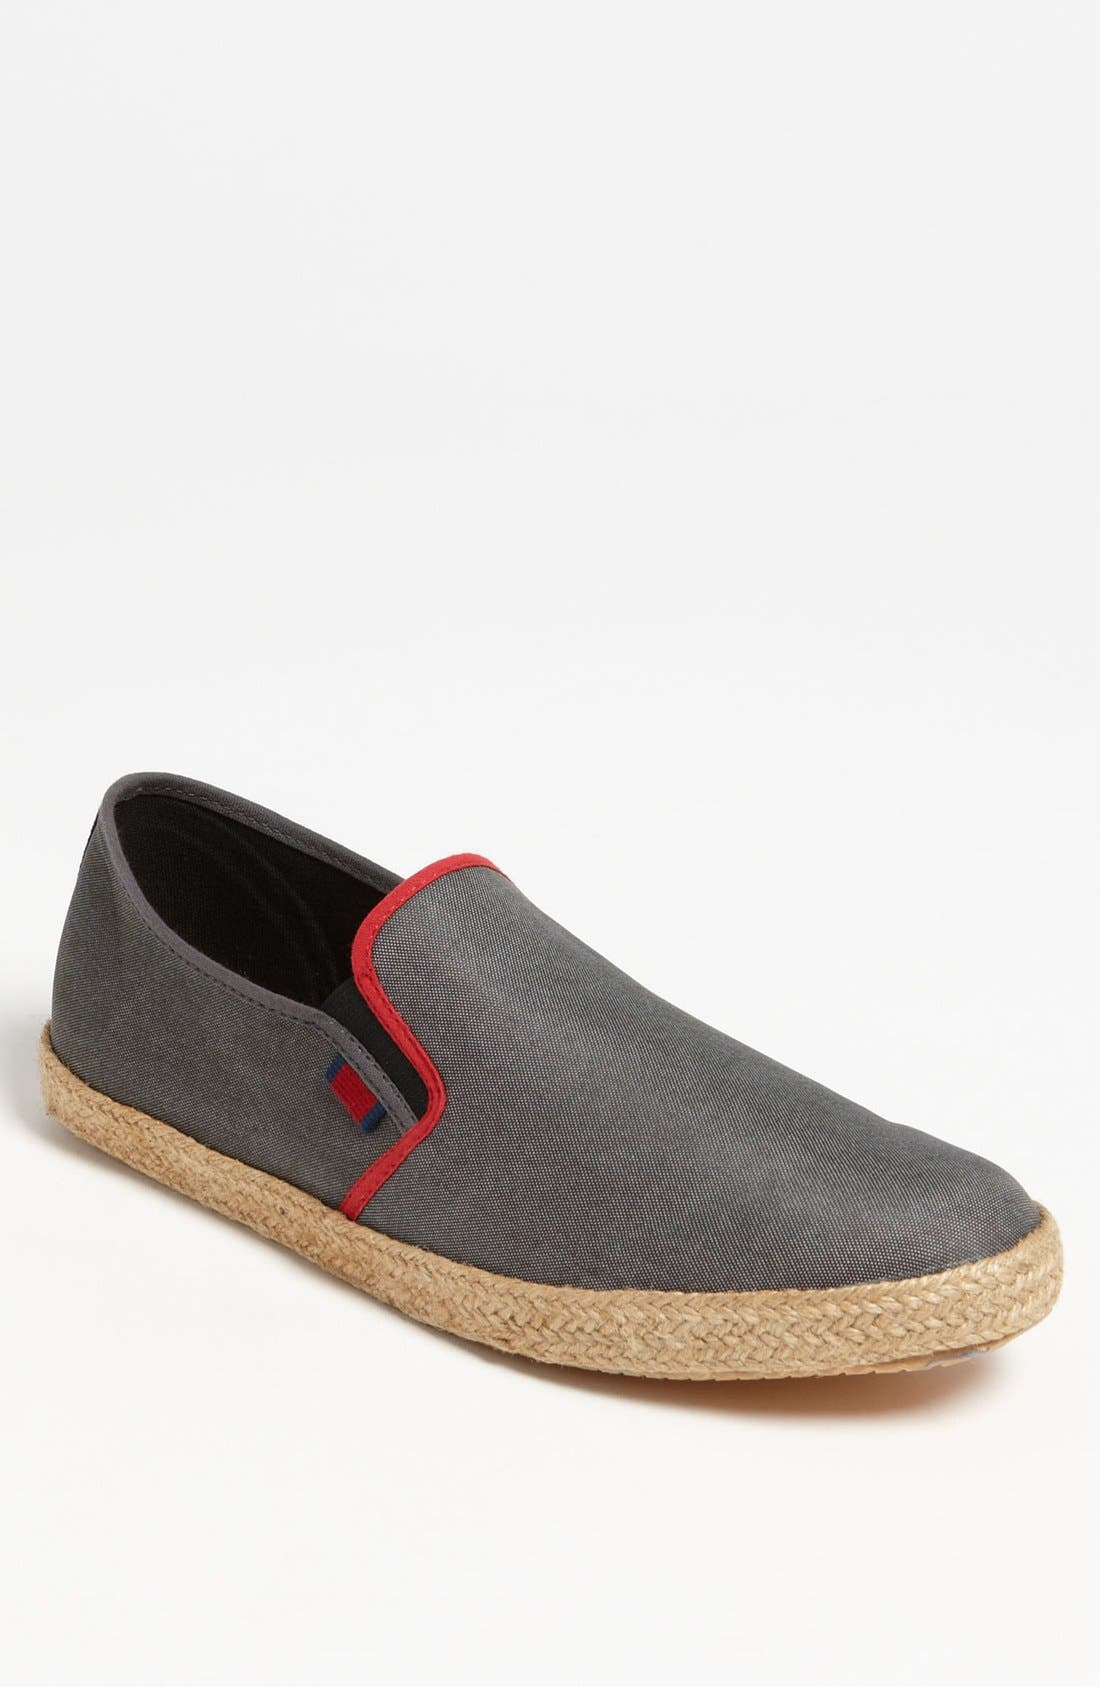 Main Image - Ben Sherman 'Pril' Slip-On